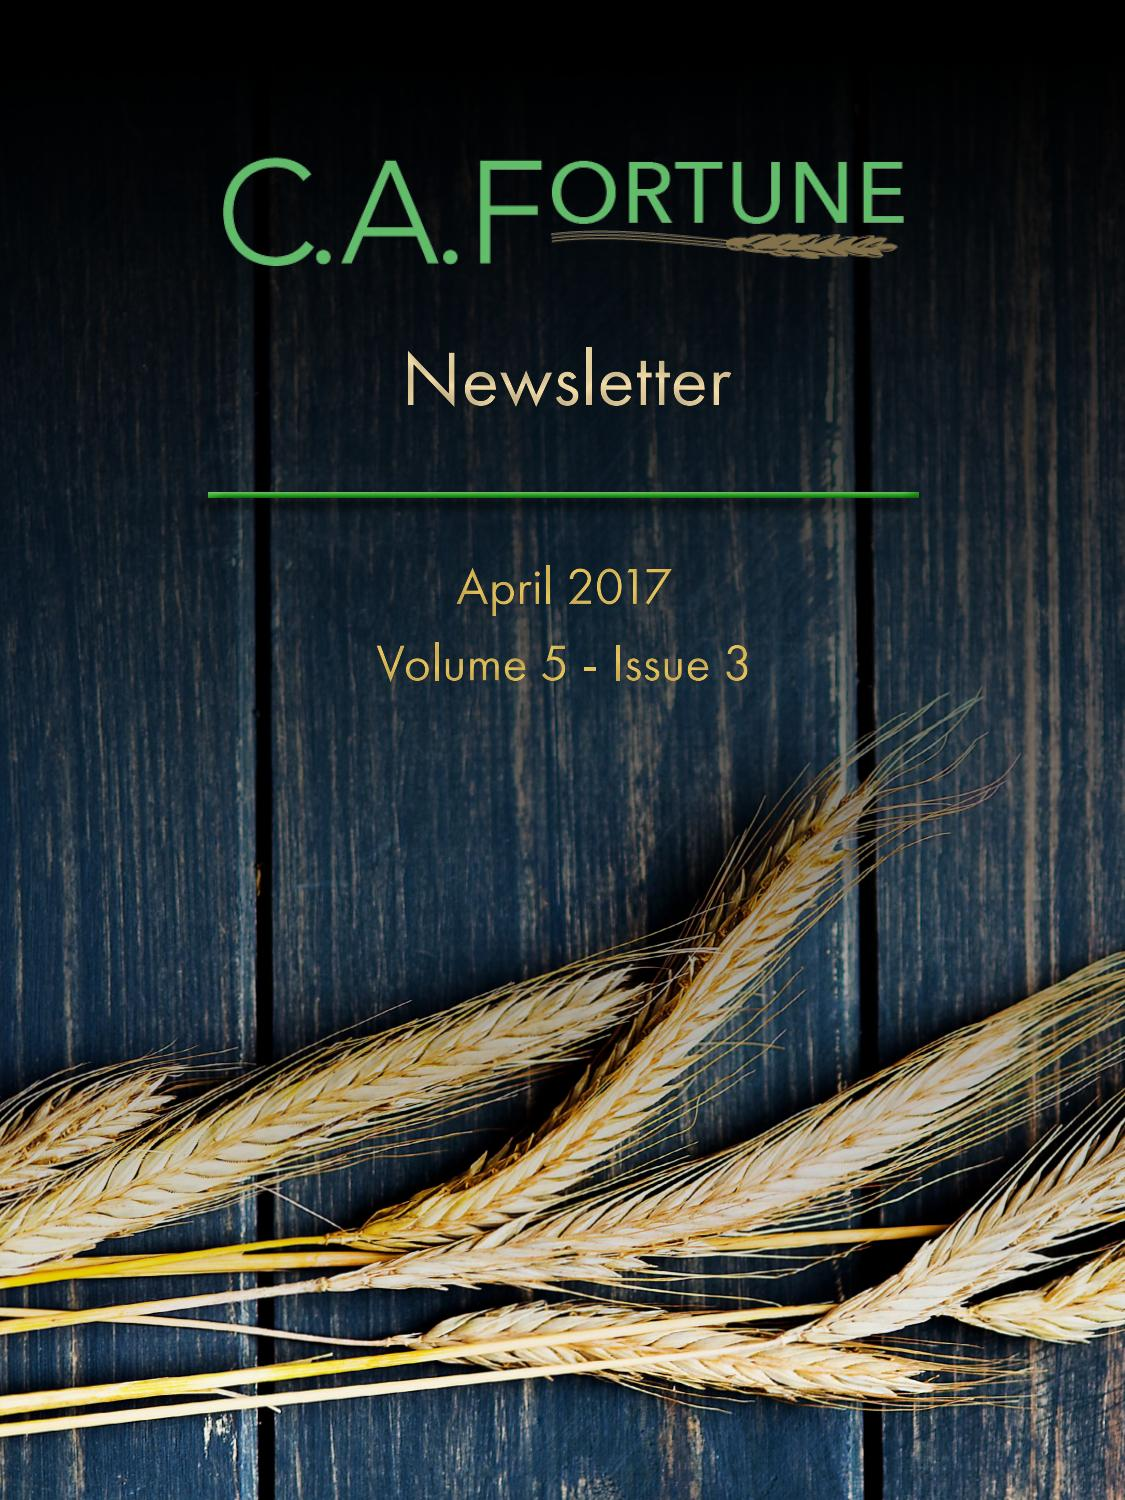 ca fortune newsletter april 2017 by ca fortune issuu